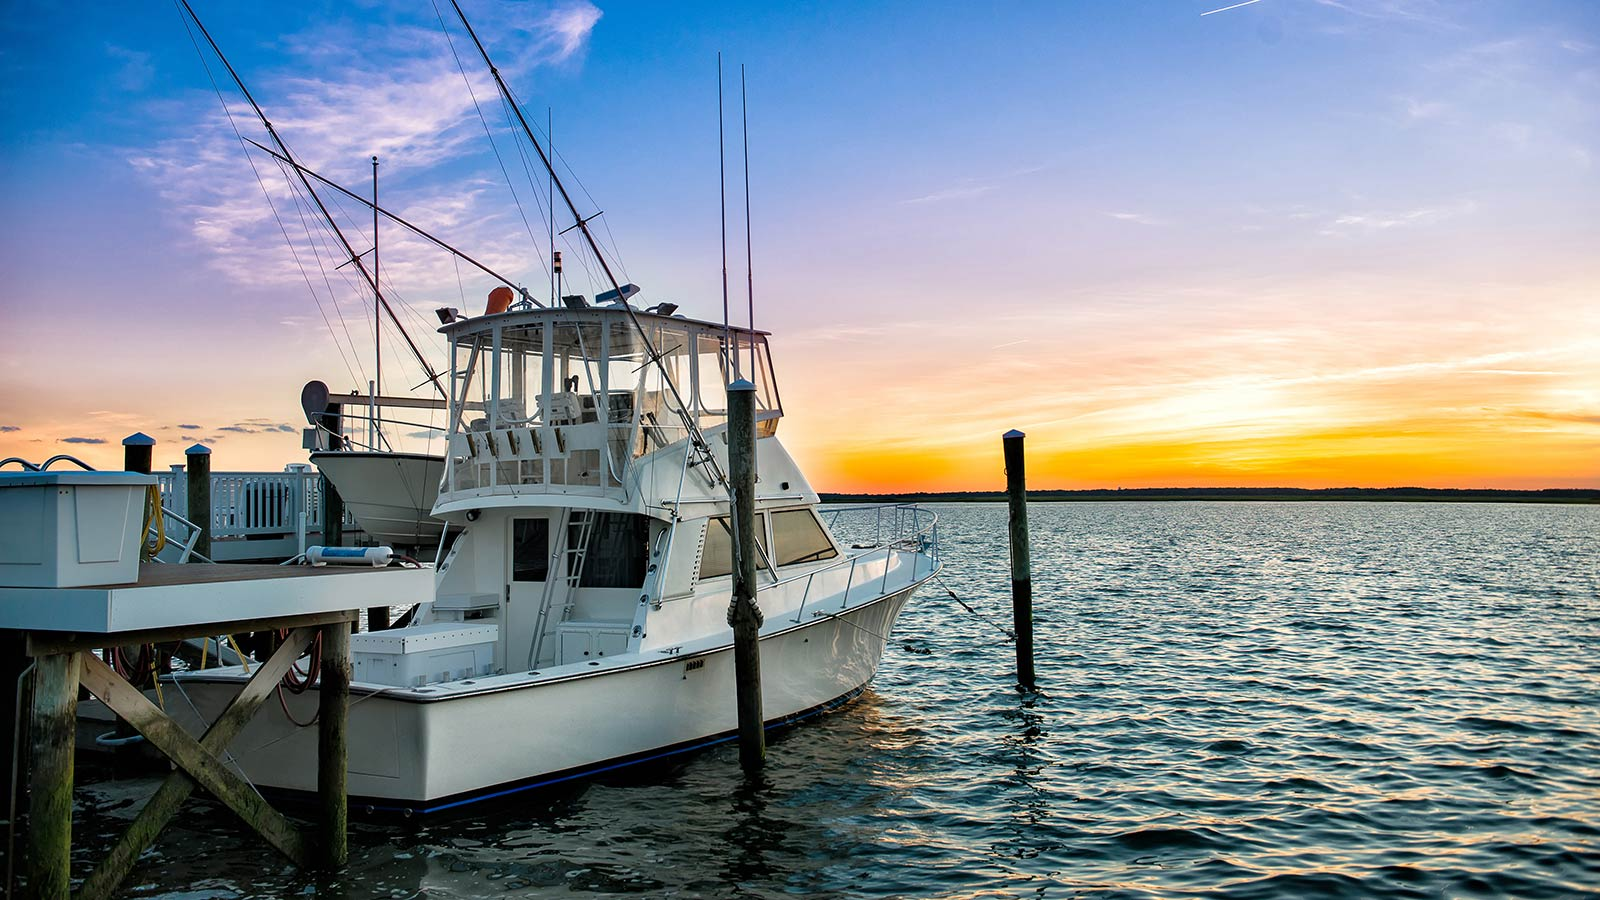 sportfishing yacht at sunset